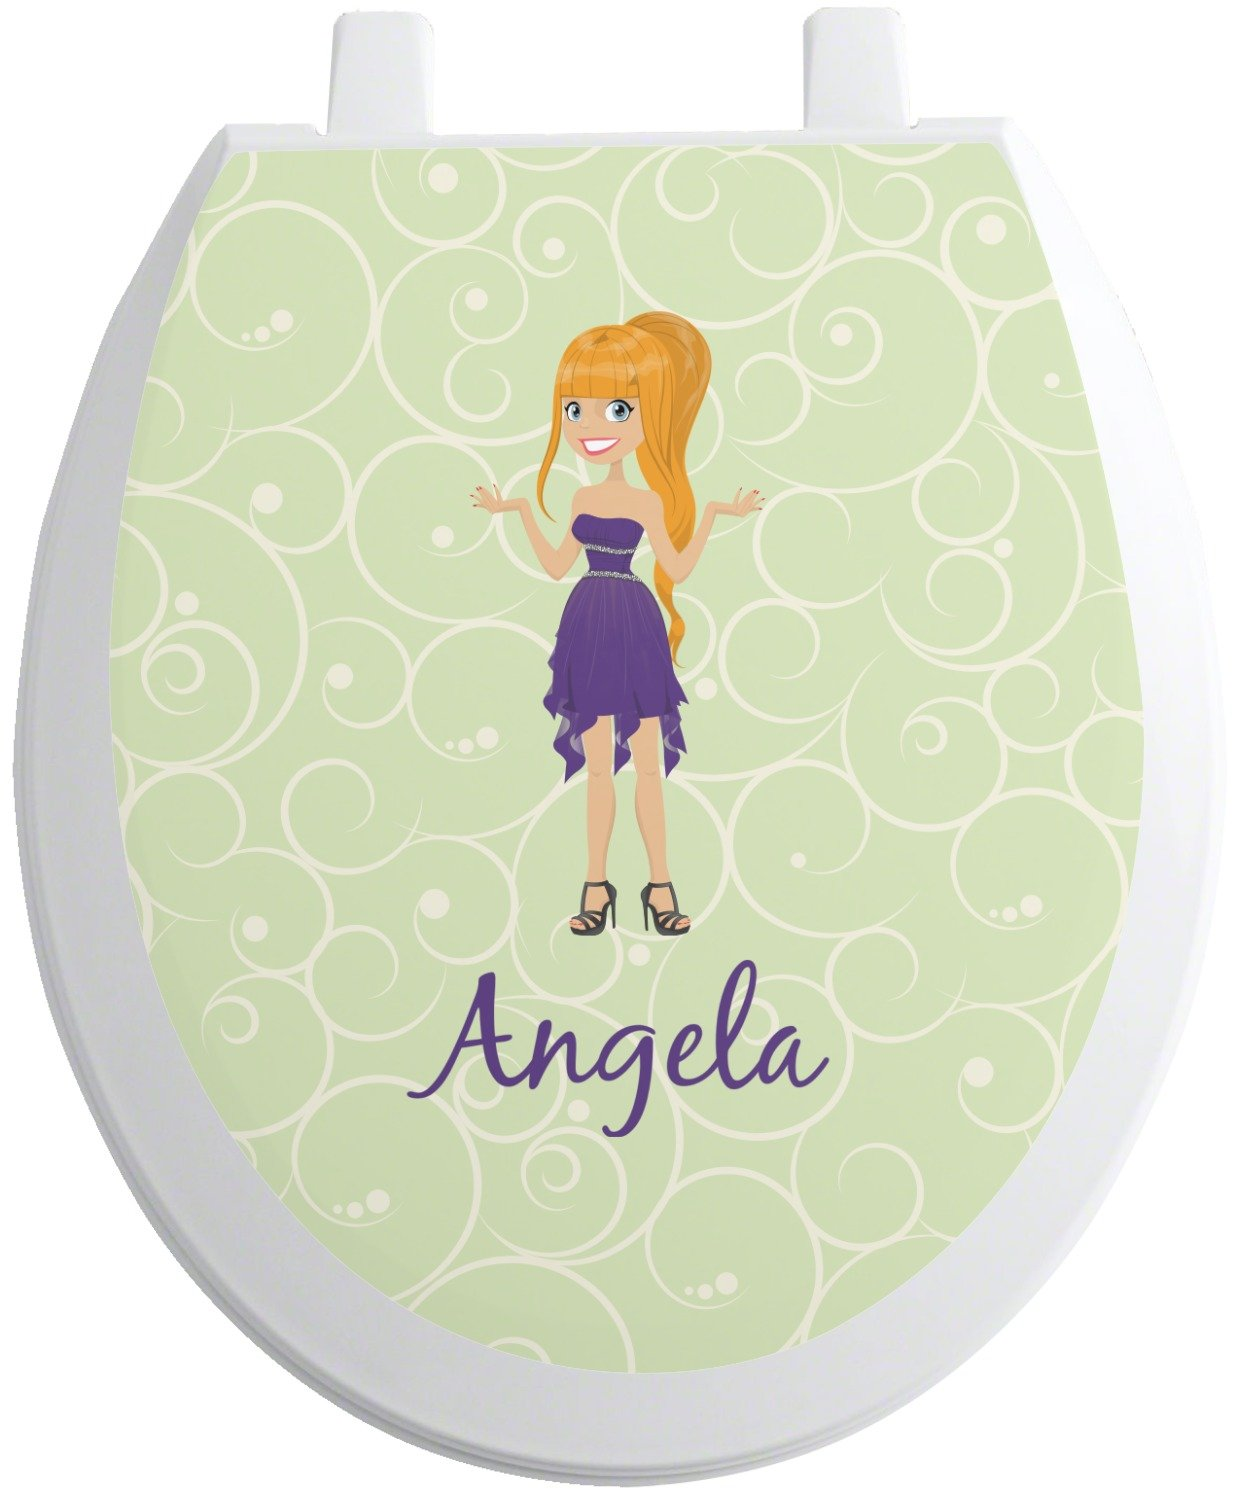 RNK Shops Custom Character (Woman) Toilet Seat Decal - Round (Personalized)